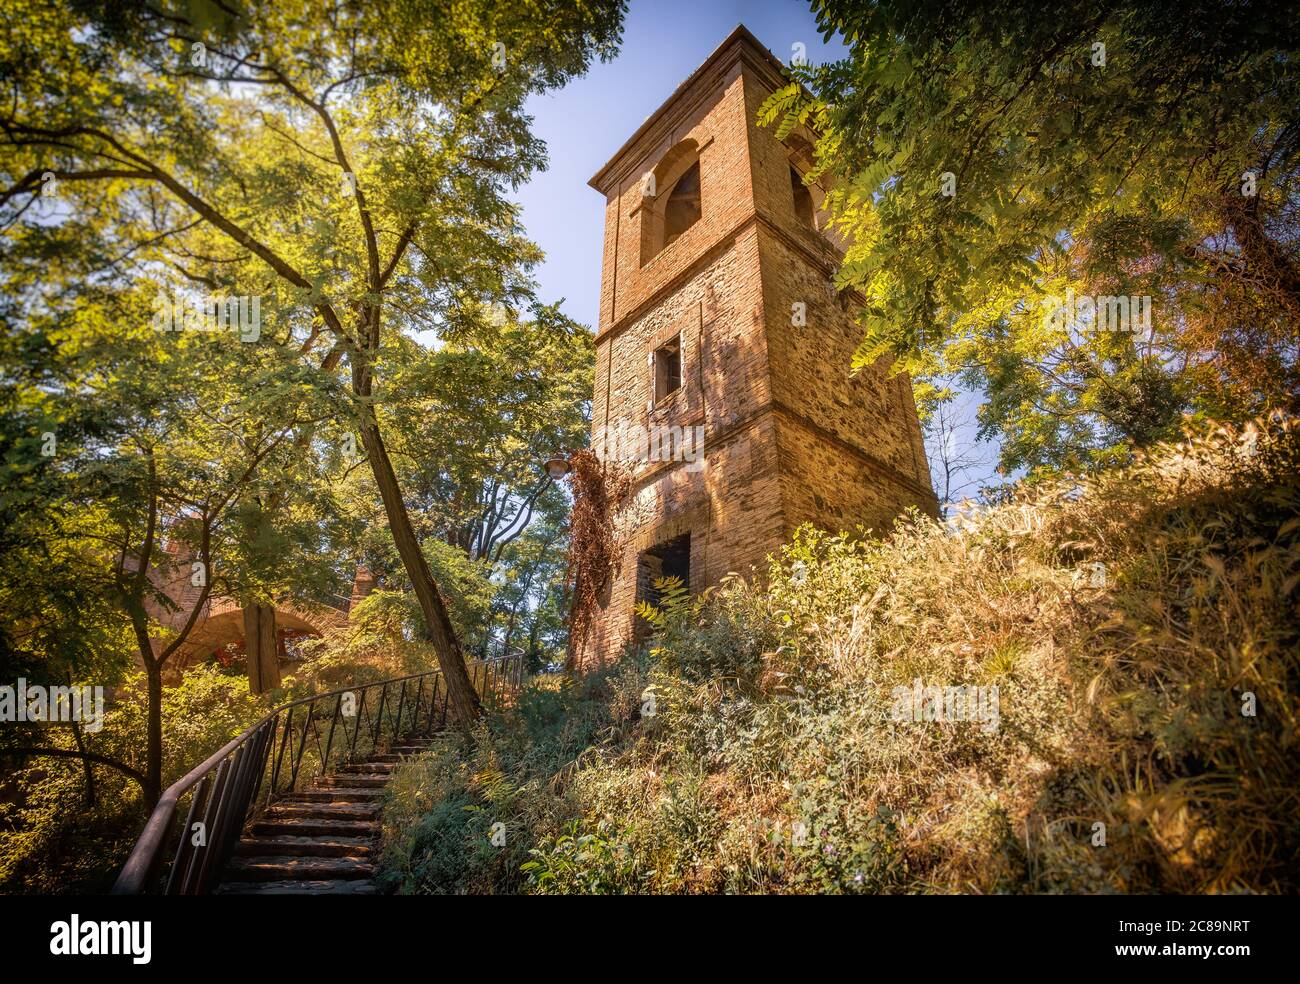 tower in forest in italy photography background - Monteveglio - Bologna Stock Photo